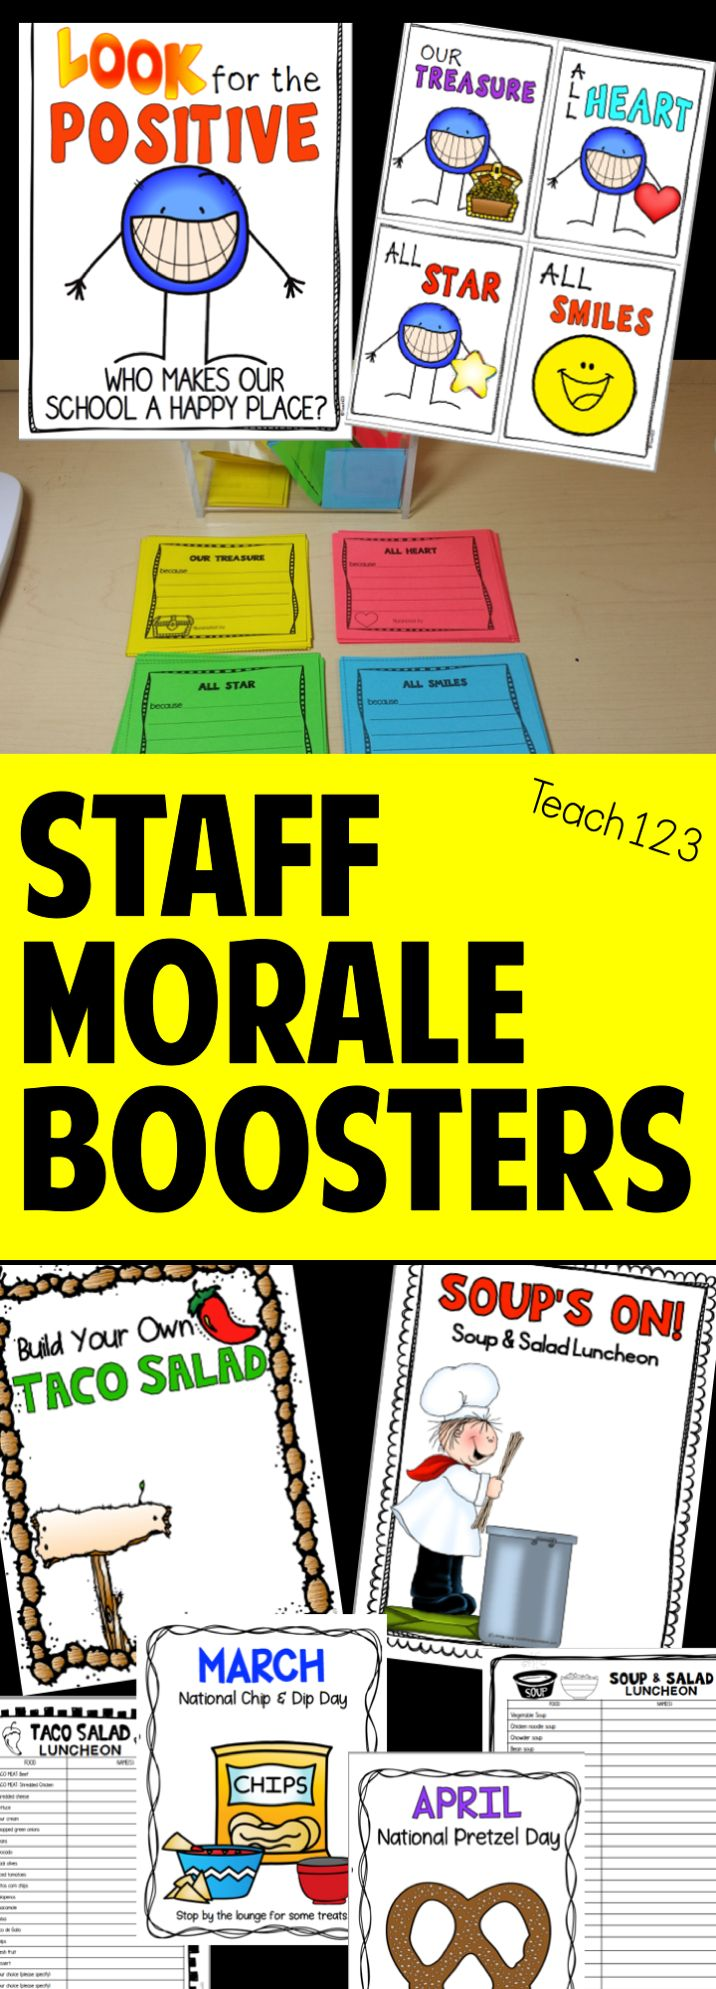 Teacher & staff appreciation activities are fun ways to boost the morale.  Includes staff shout outs, happy notes, luncheons, faculty snacks, tips to organize events, and more!  paid